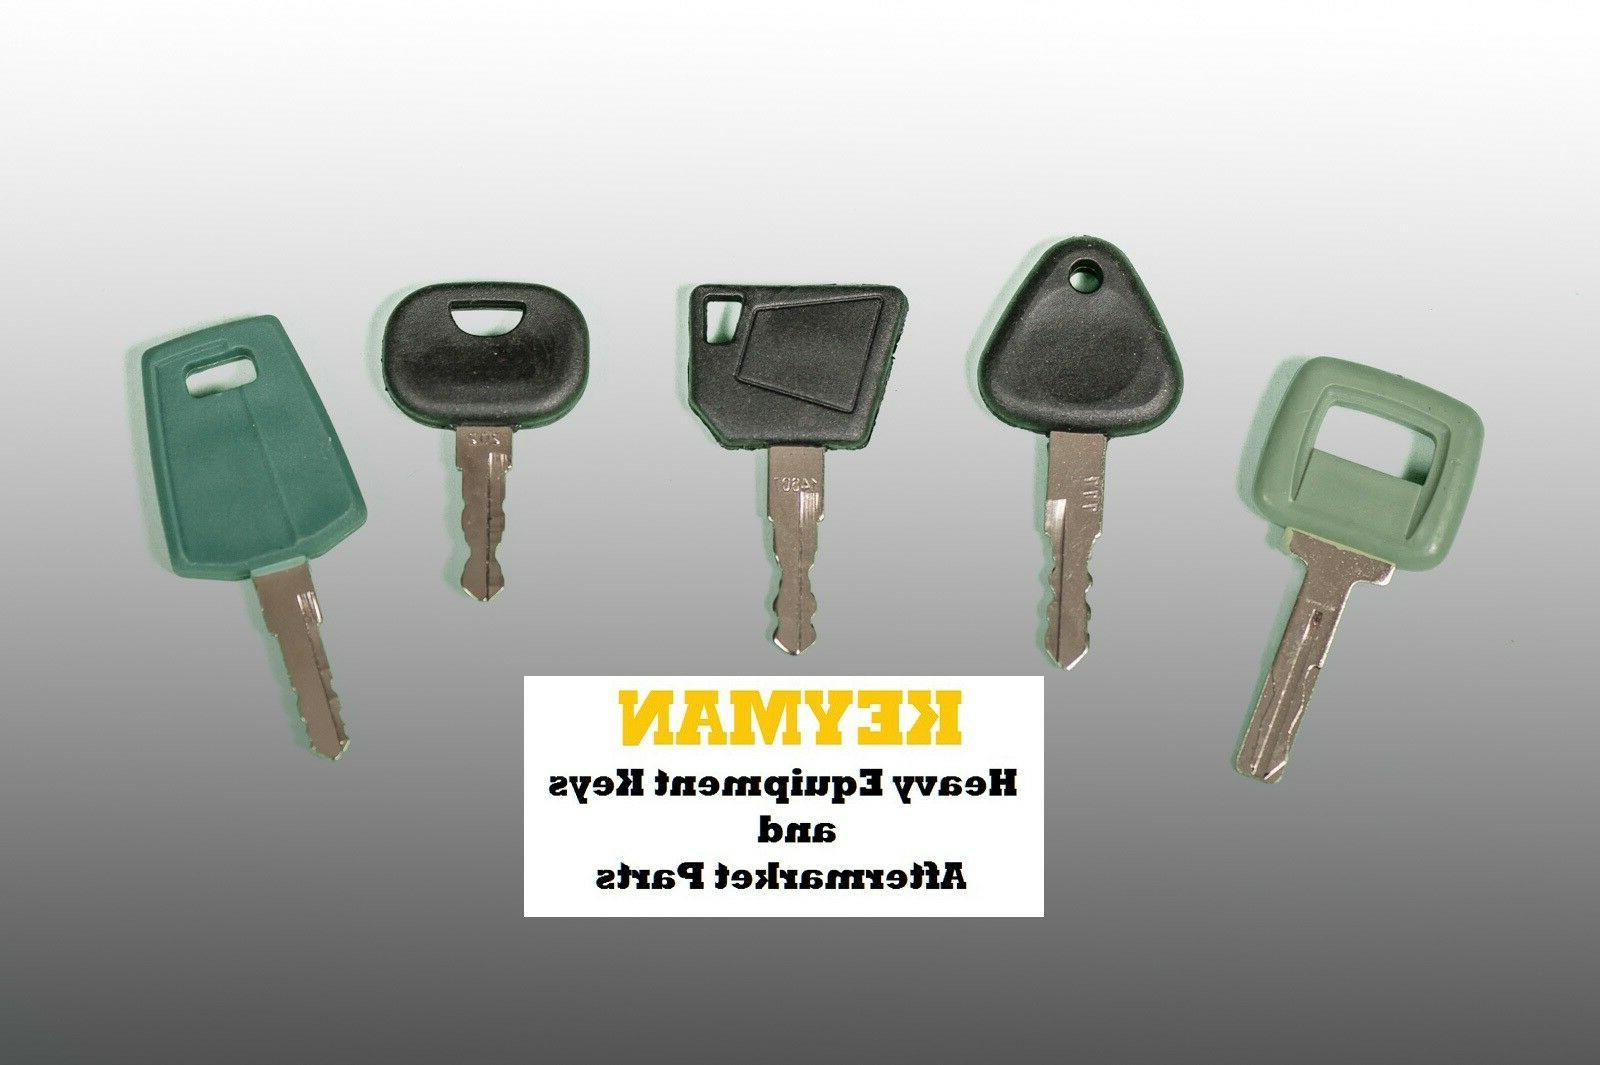 Set of 5 Volvo Keys - Heavy Equipment Key Set w/ Laser - NEW